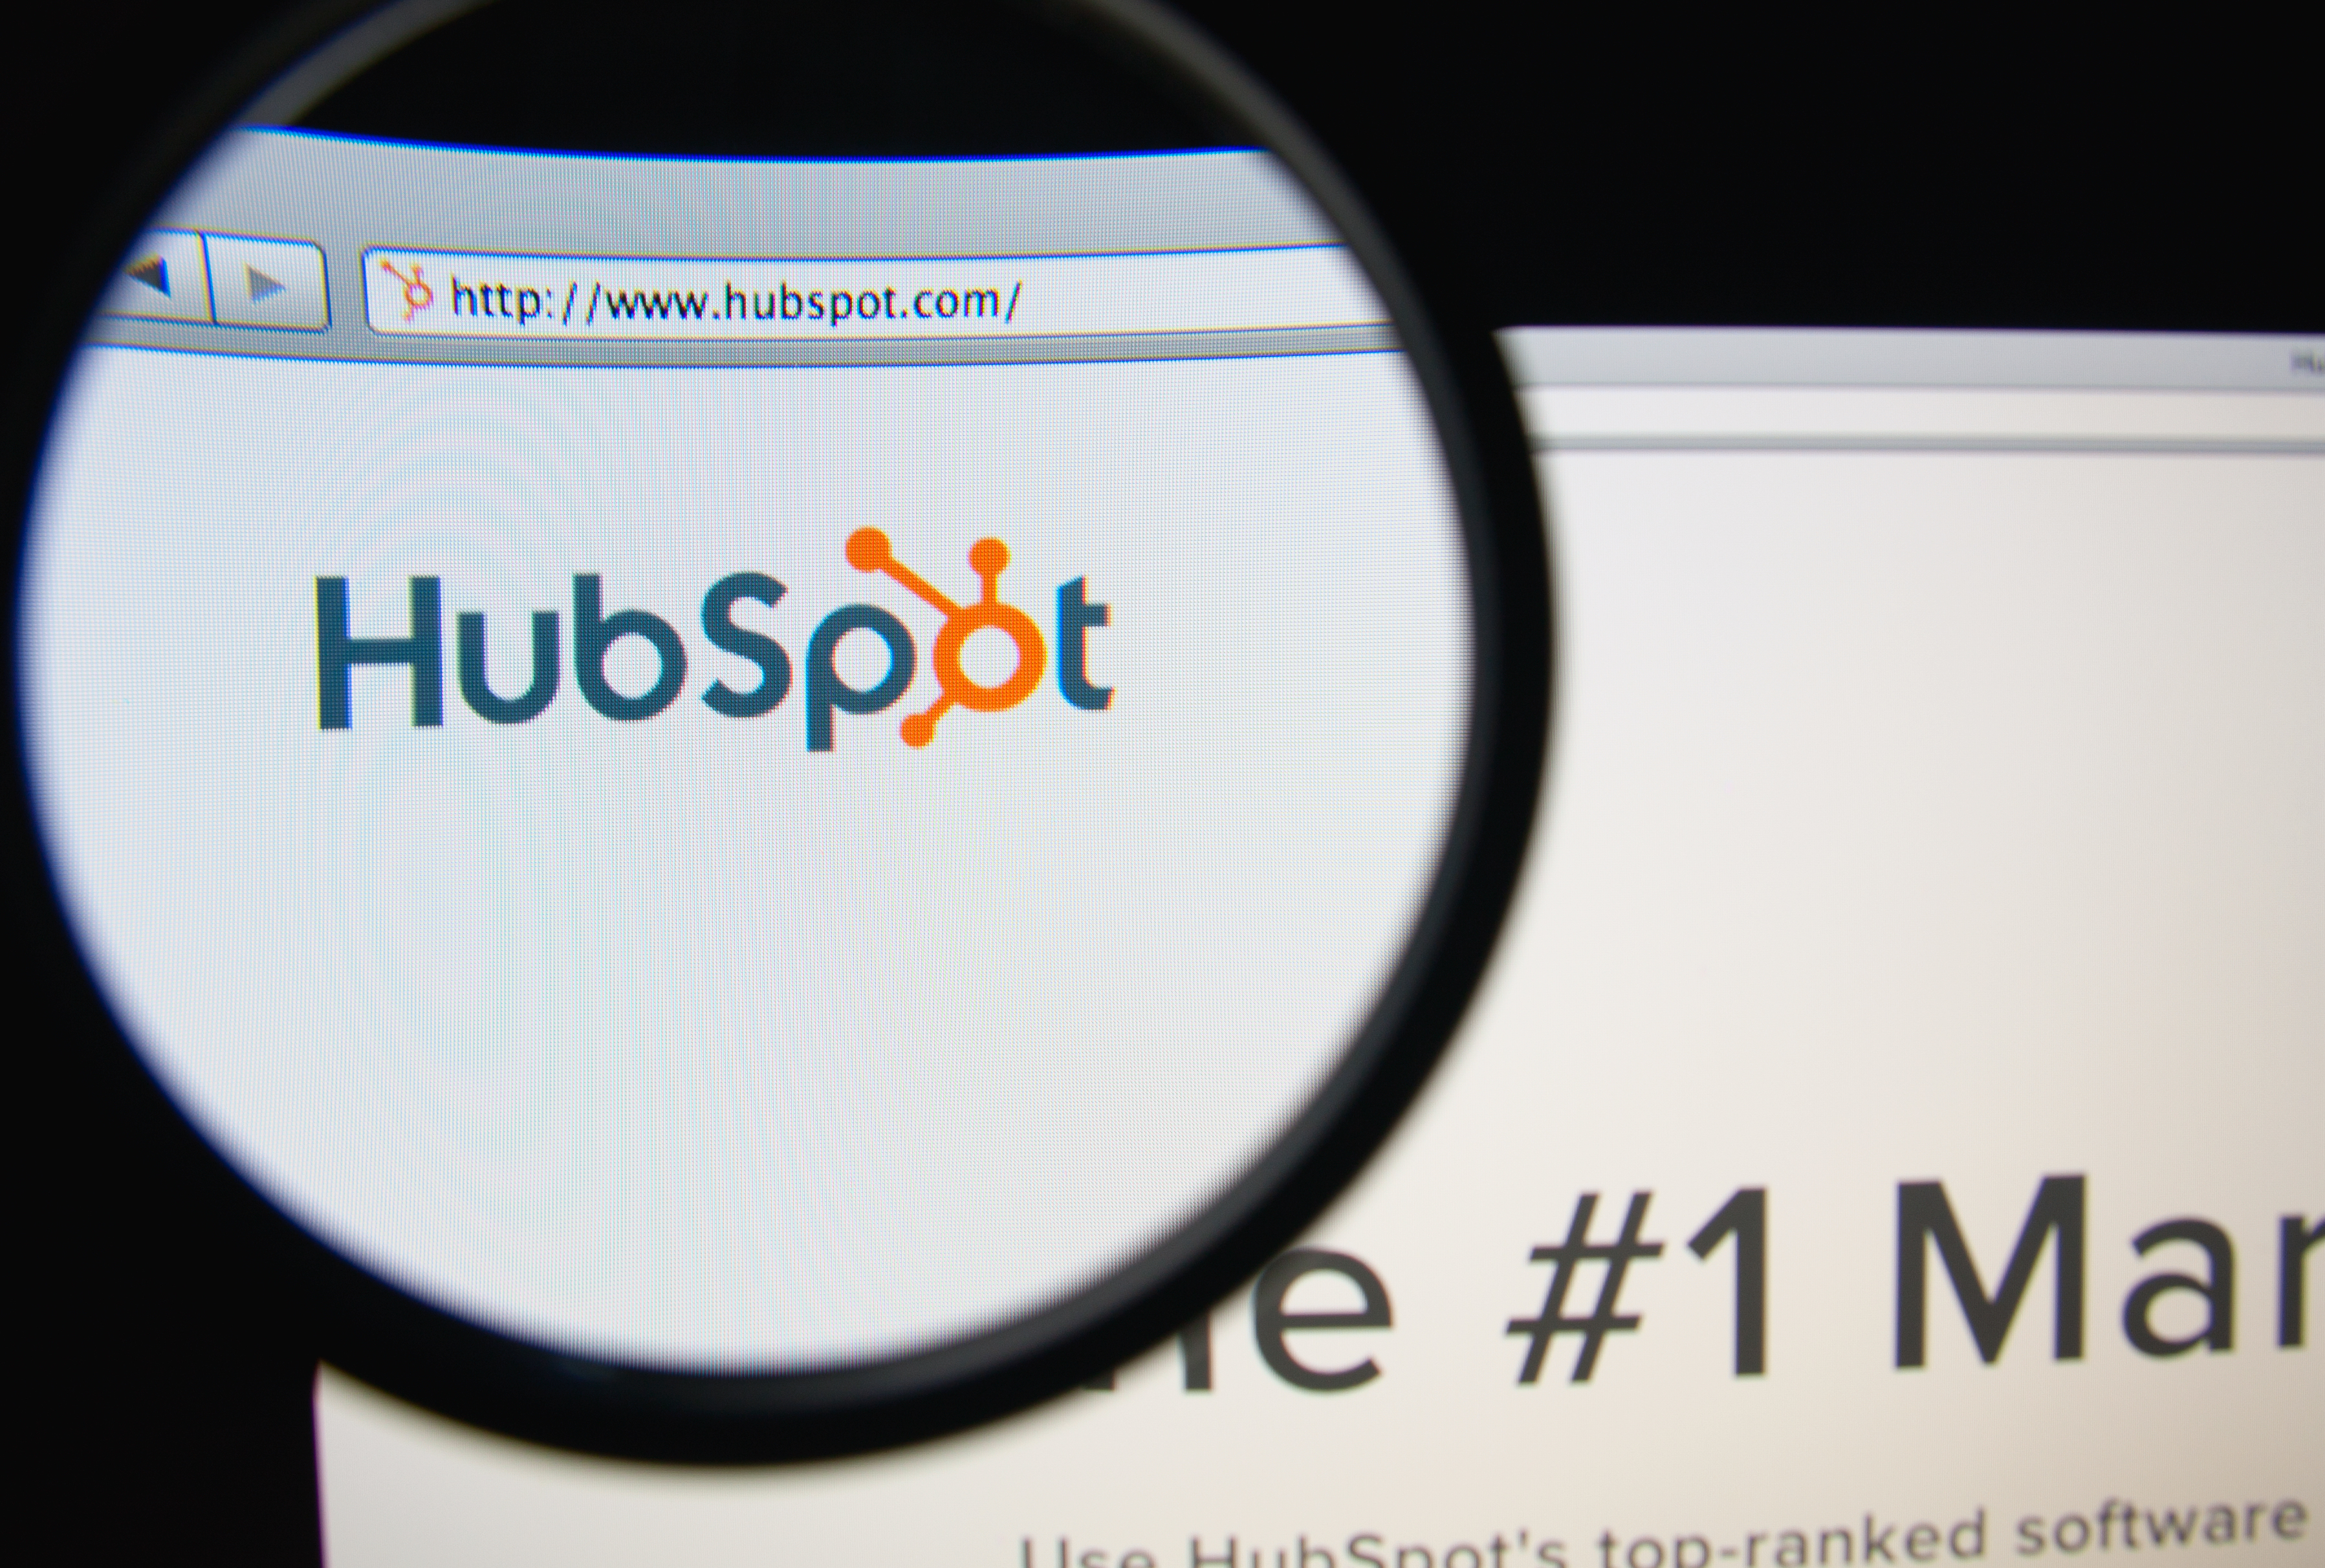 Déployer concrètement l'Account-Based Marketing avec HubSpot en 6 étapes